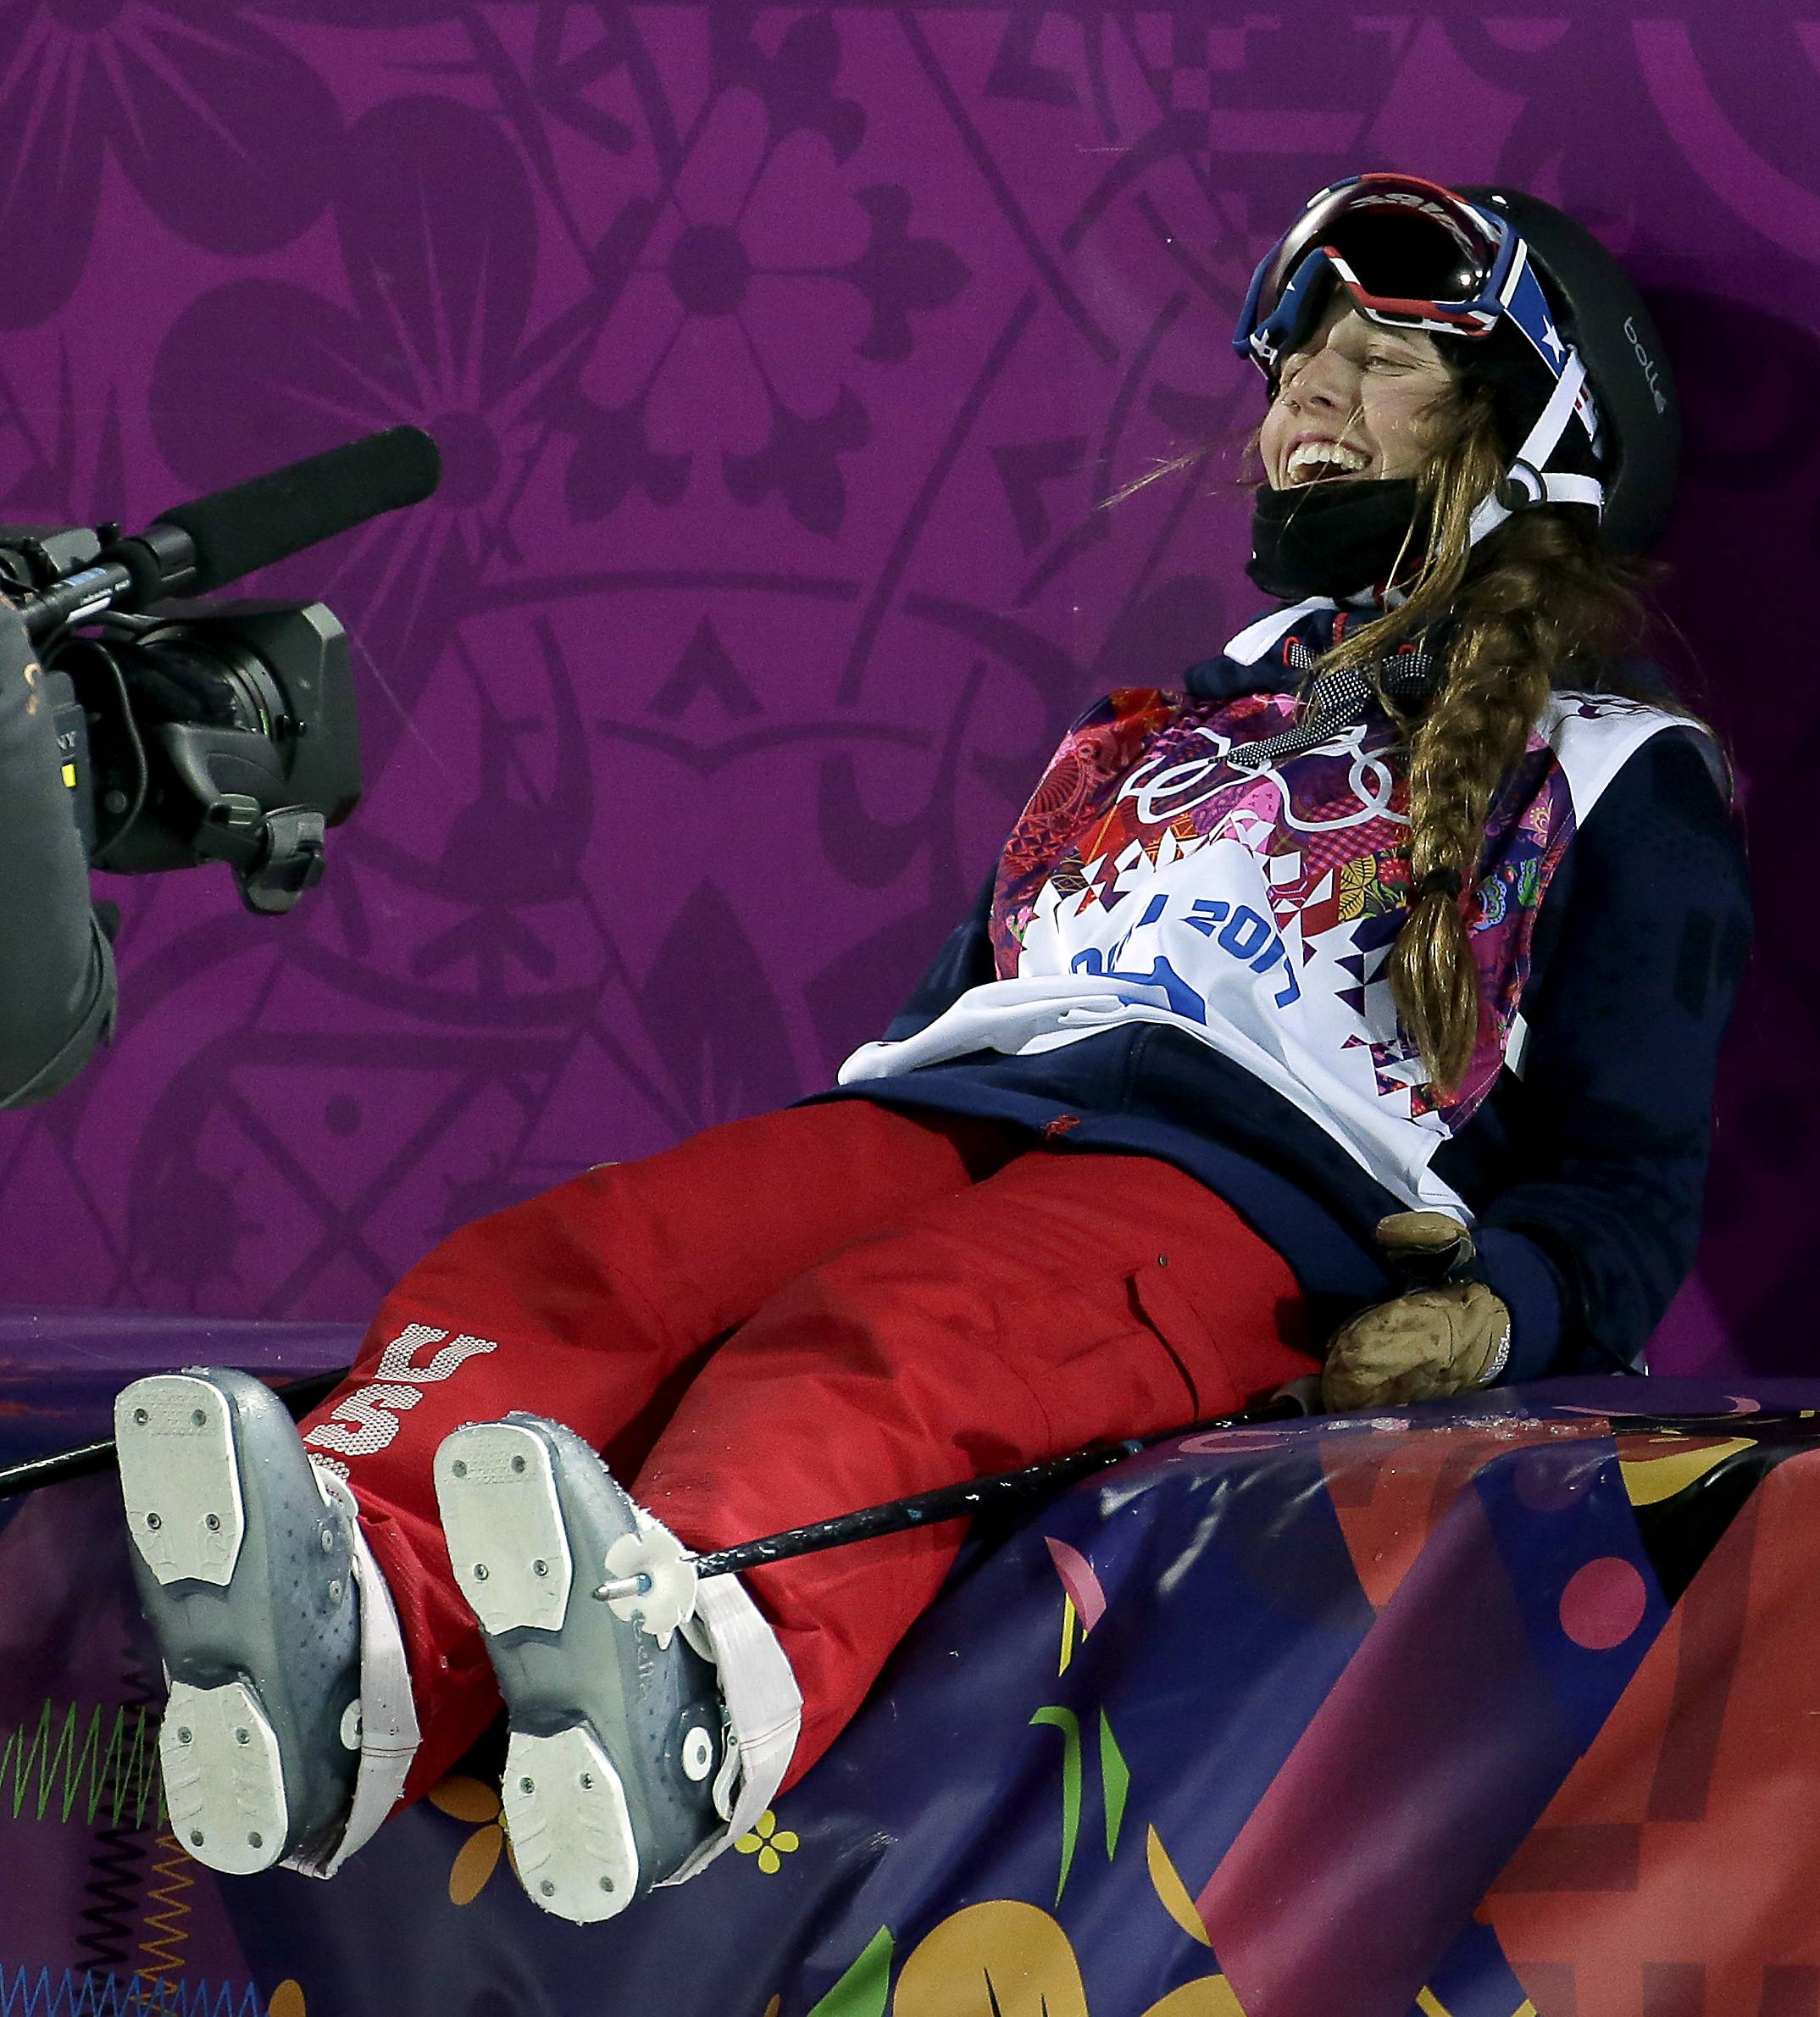 Gold medalist Maddie Bowman of the United States reacts after her first run in the finals of the women's ski halfpipe.